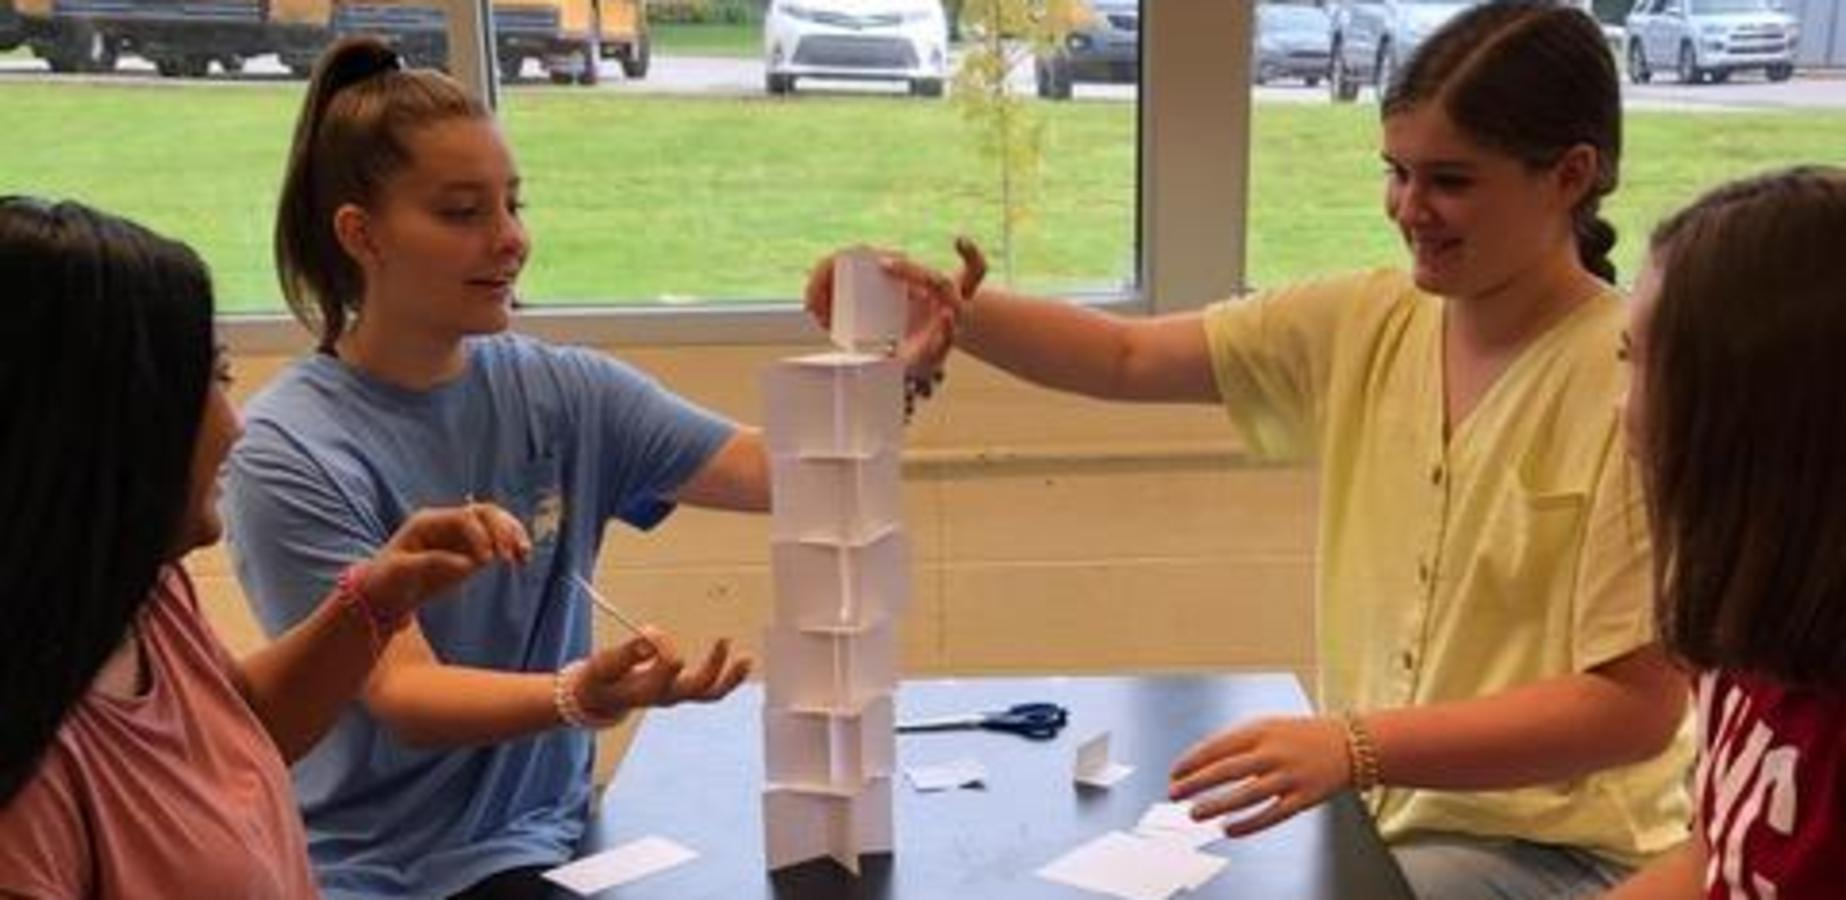 IMS students work on STEAM project in science